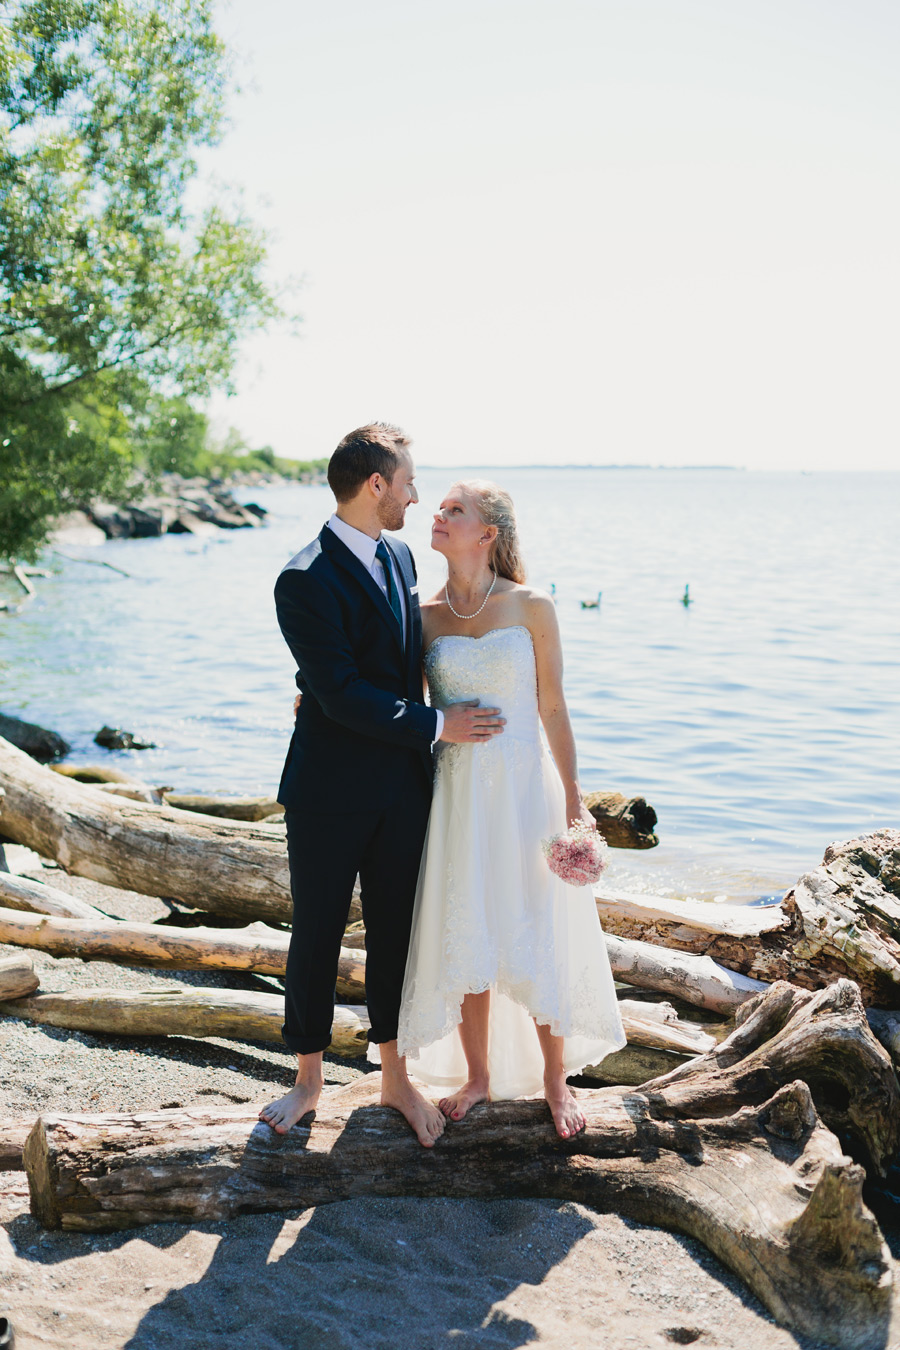 019-toronto-elopement-photographer